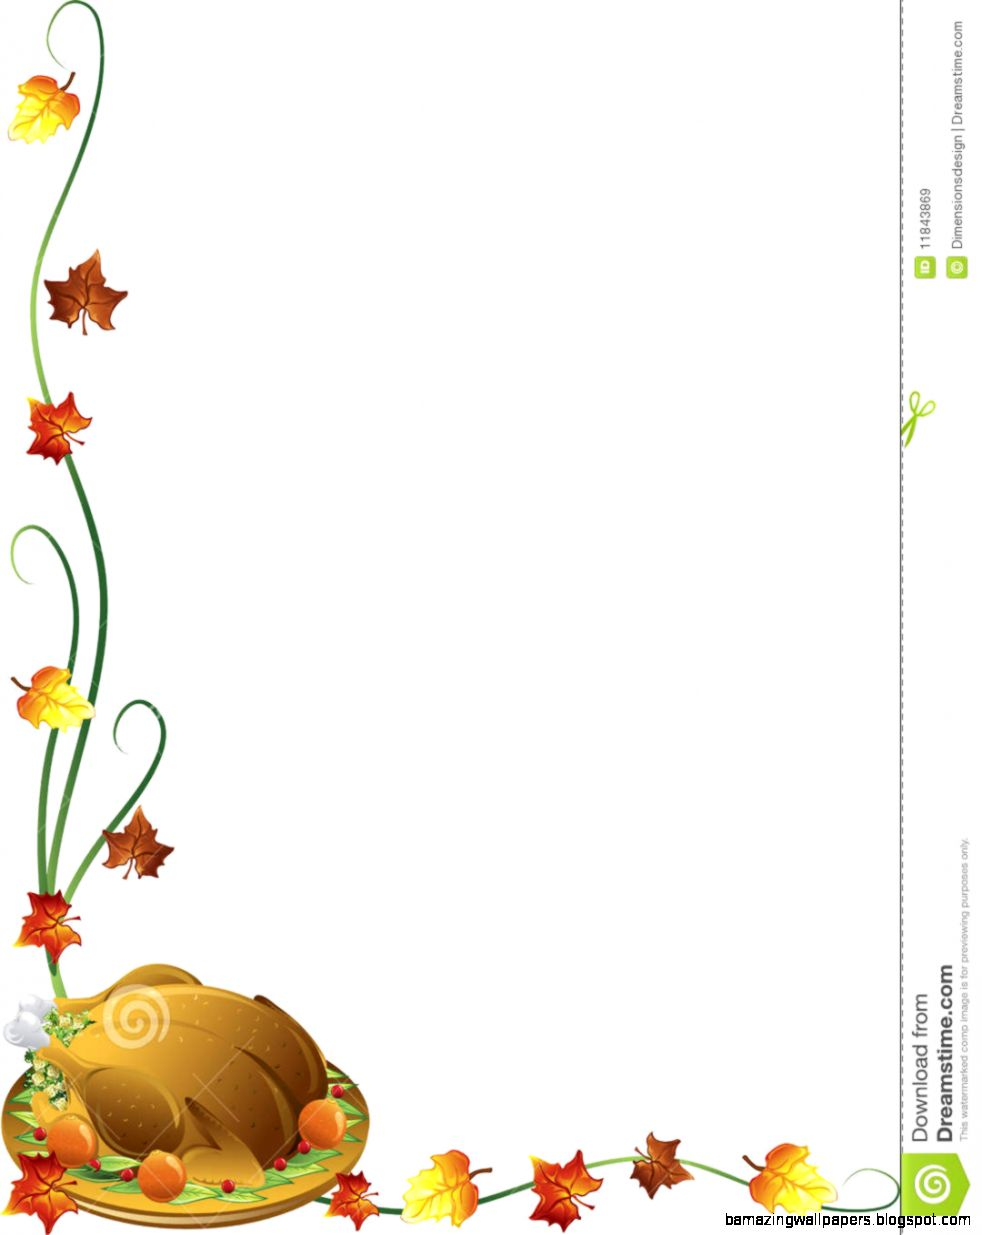 Thanksgiving Turkey Border Royalty Free Stock Images   Image 11843869